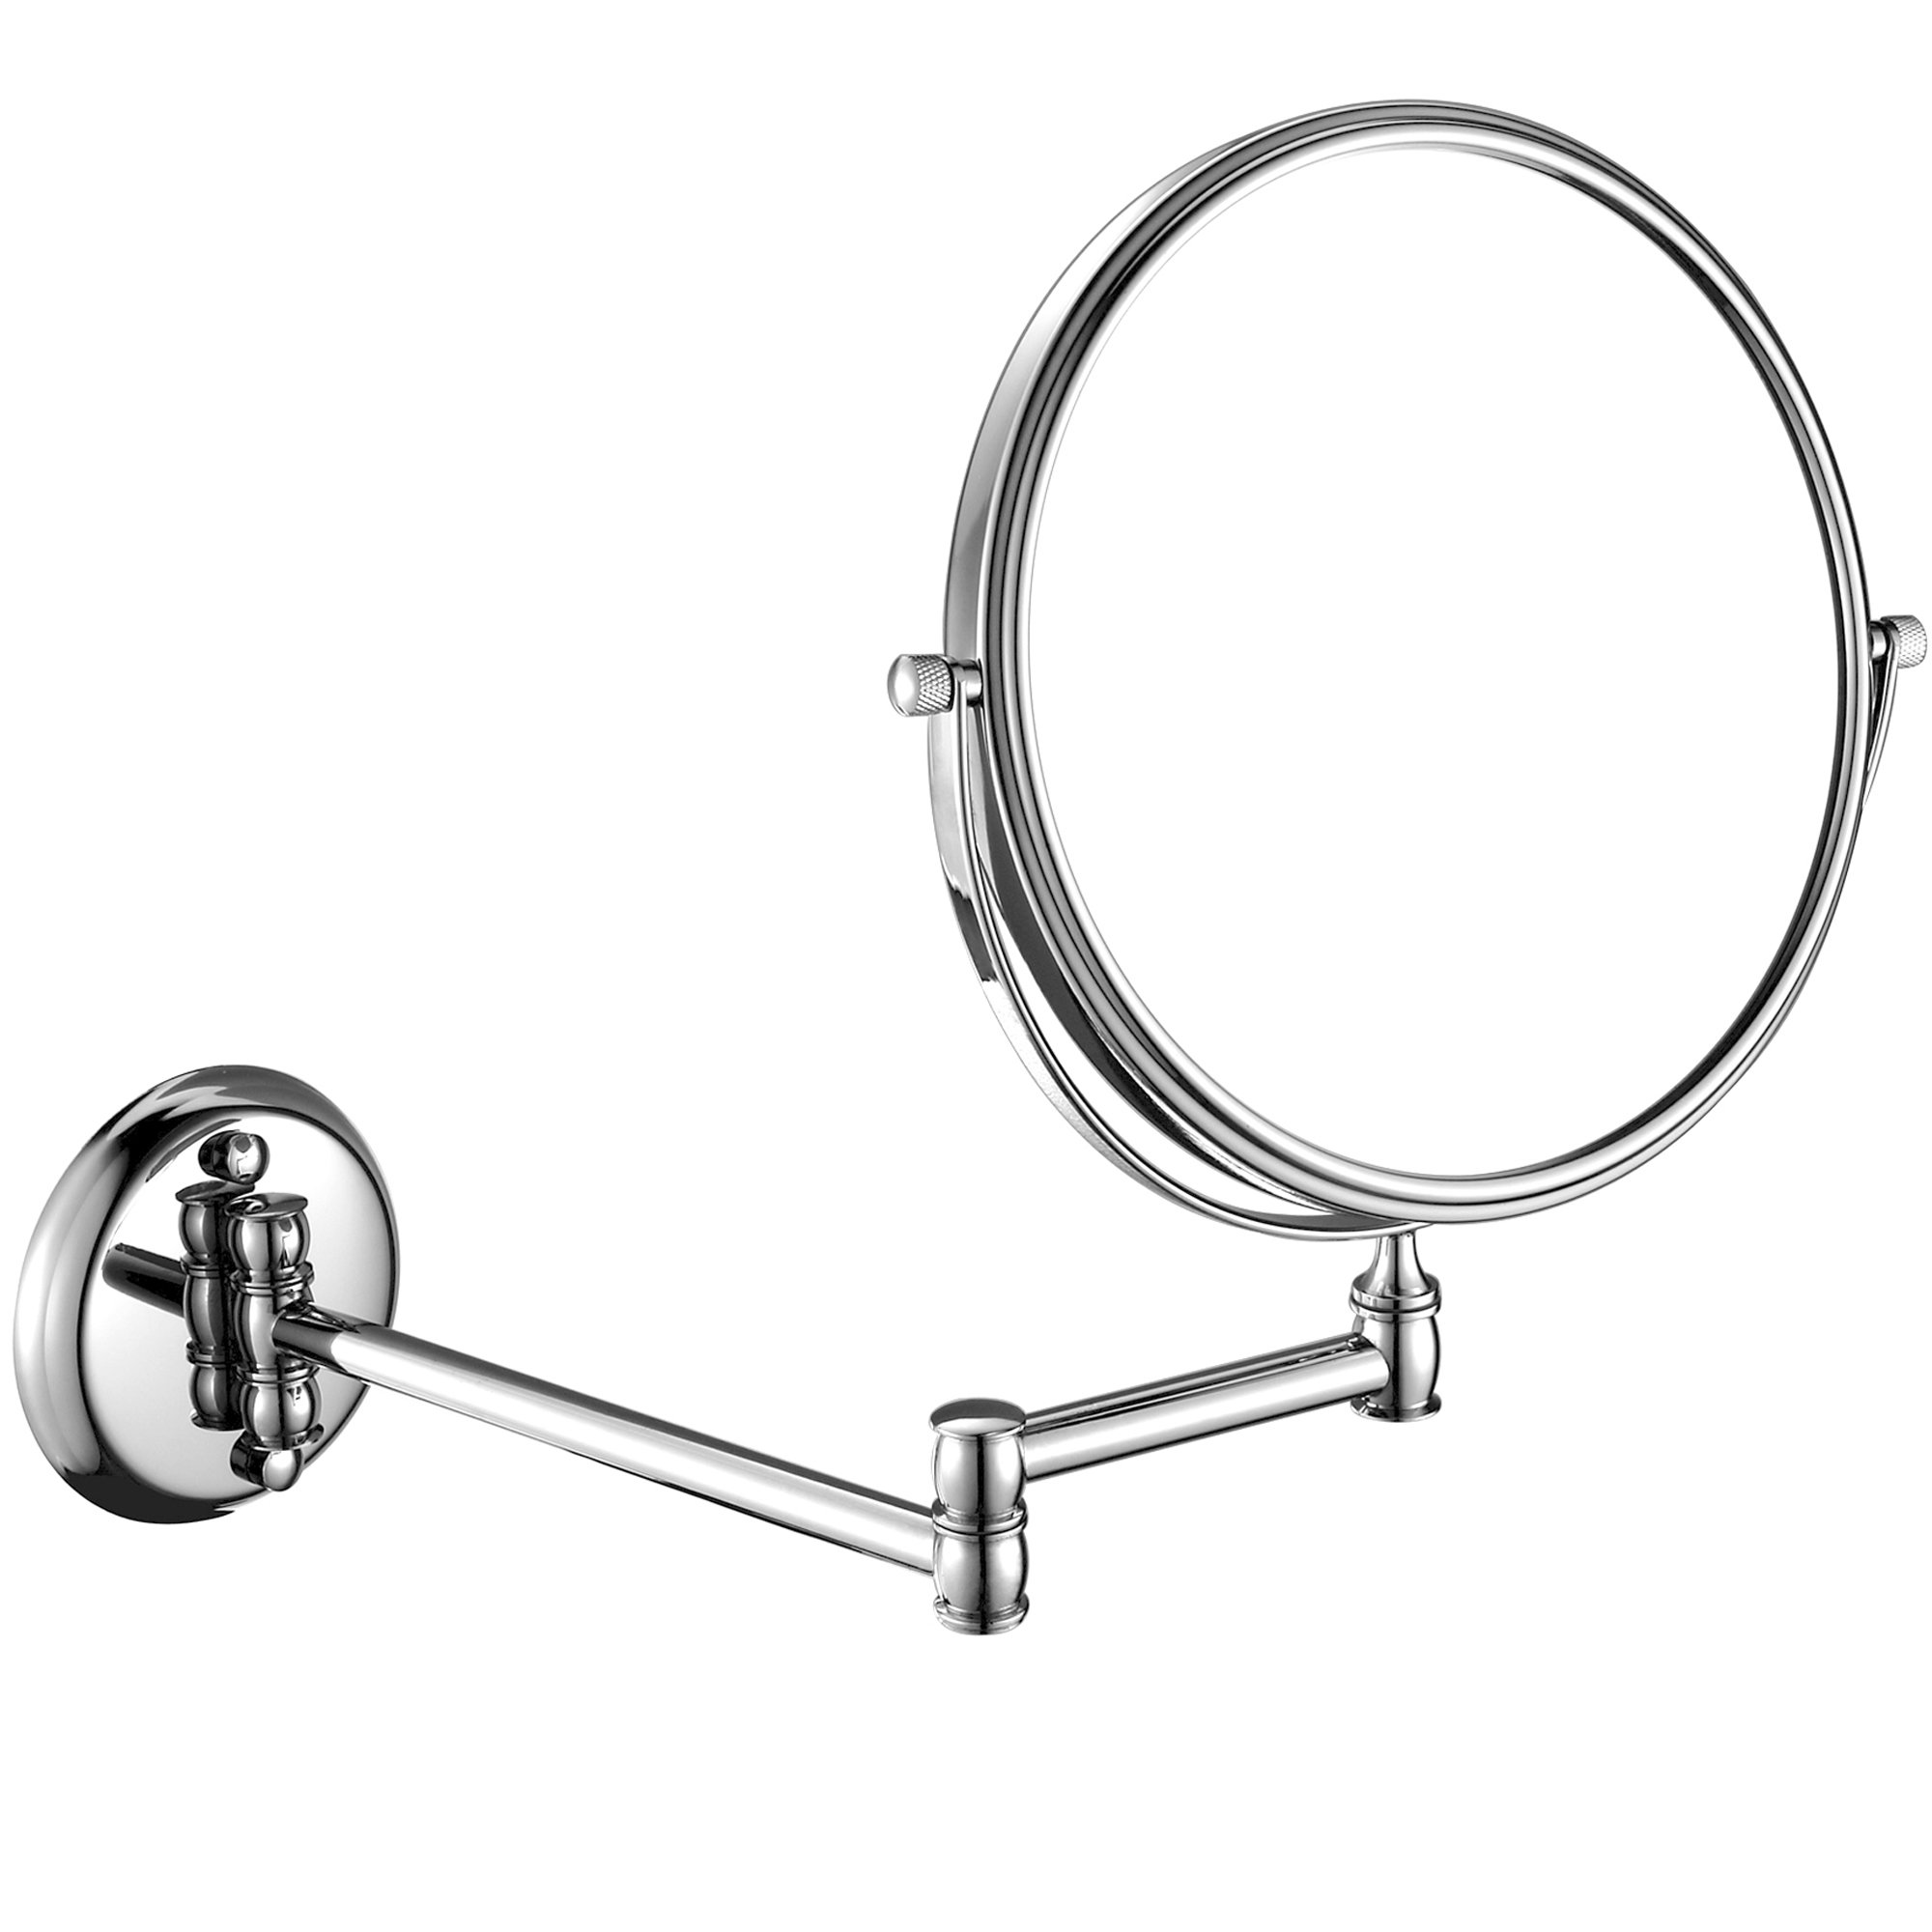 GURUN 7x Magnification Adjustable Round Mirror Wall Mount Makeup Mirrors,8-Inch,Chrome Finish M1308(8in,7x)